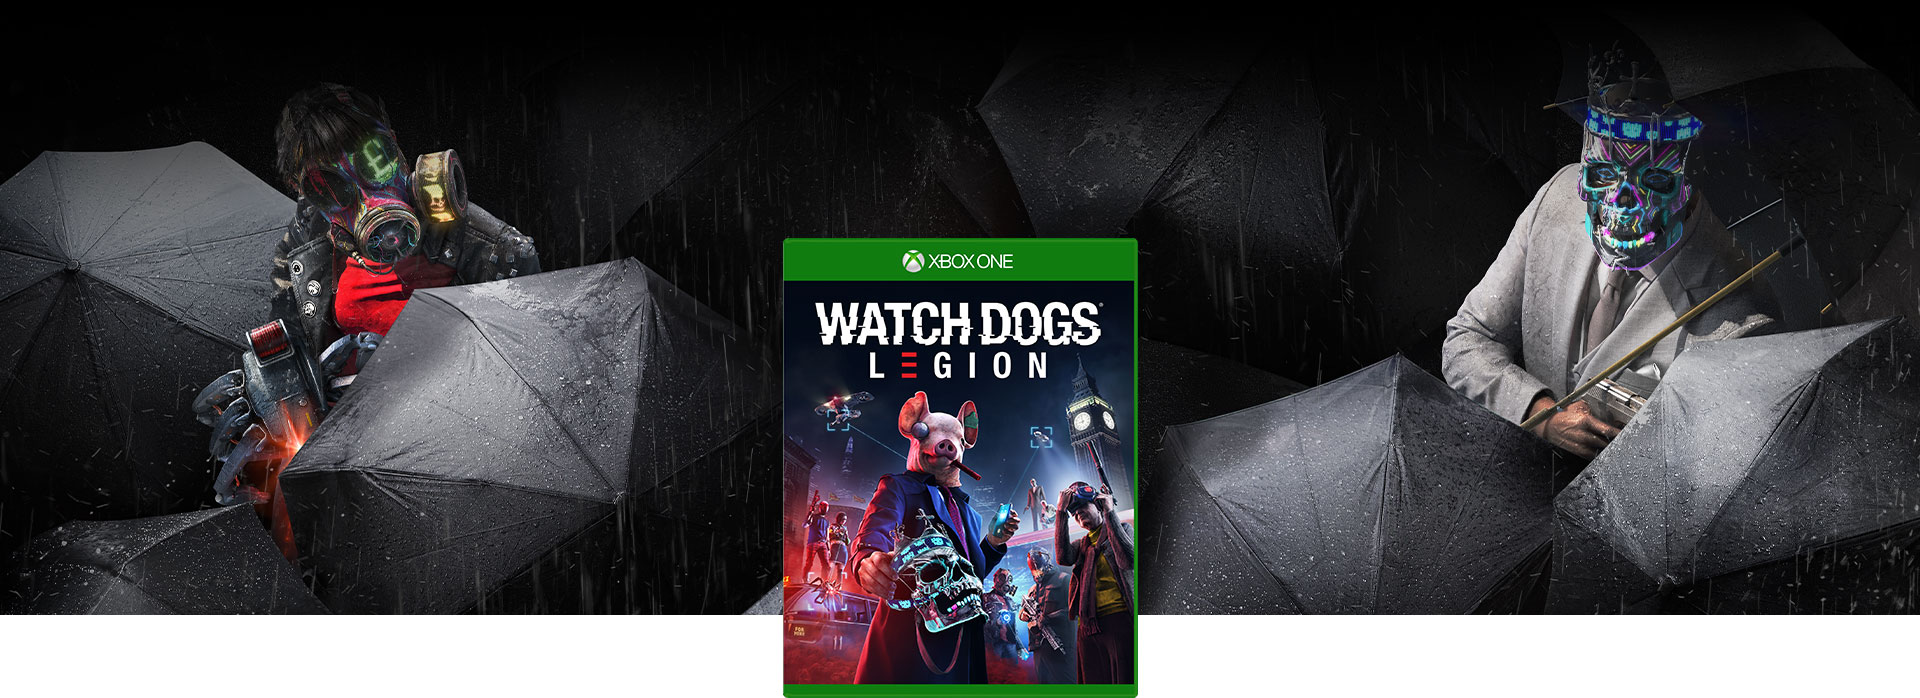 Boxshot of Watch Dogs: Legion and two characters with weapons among black umbrellas and rain